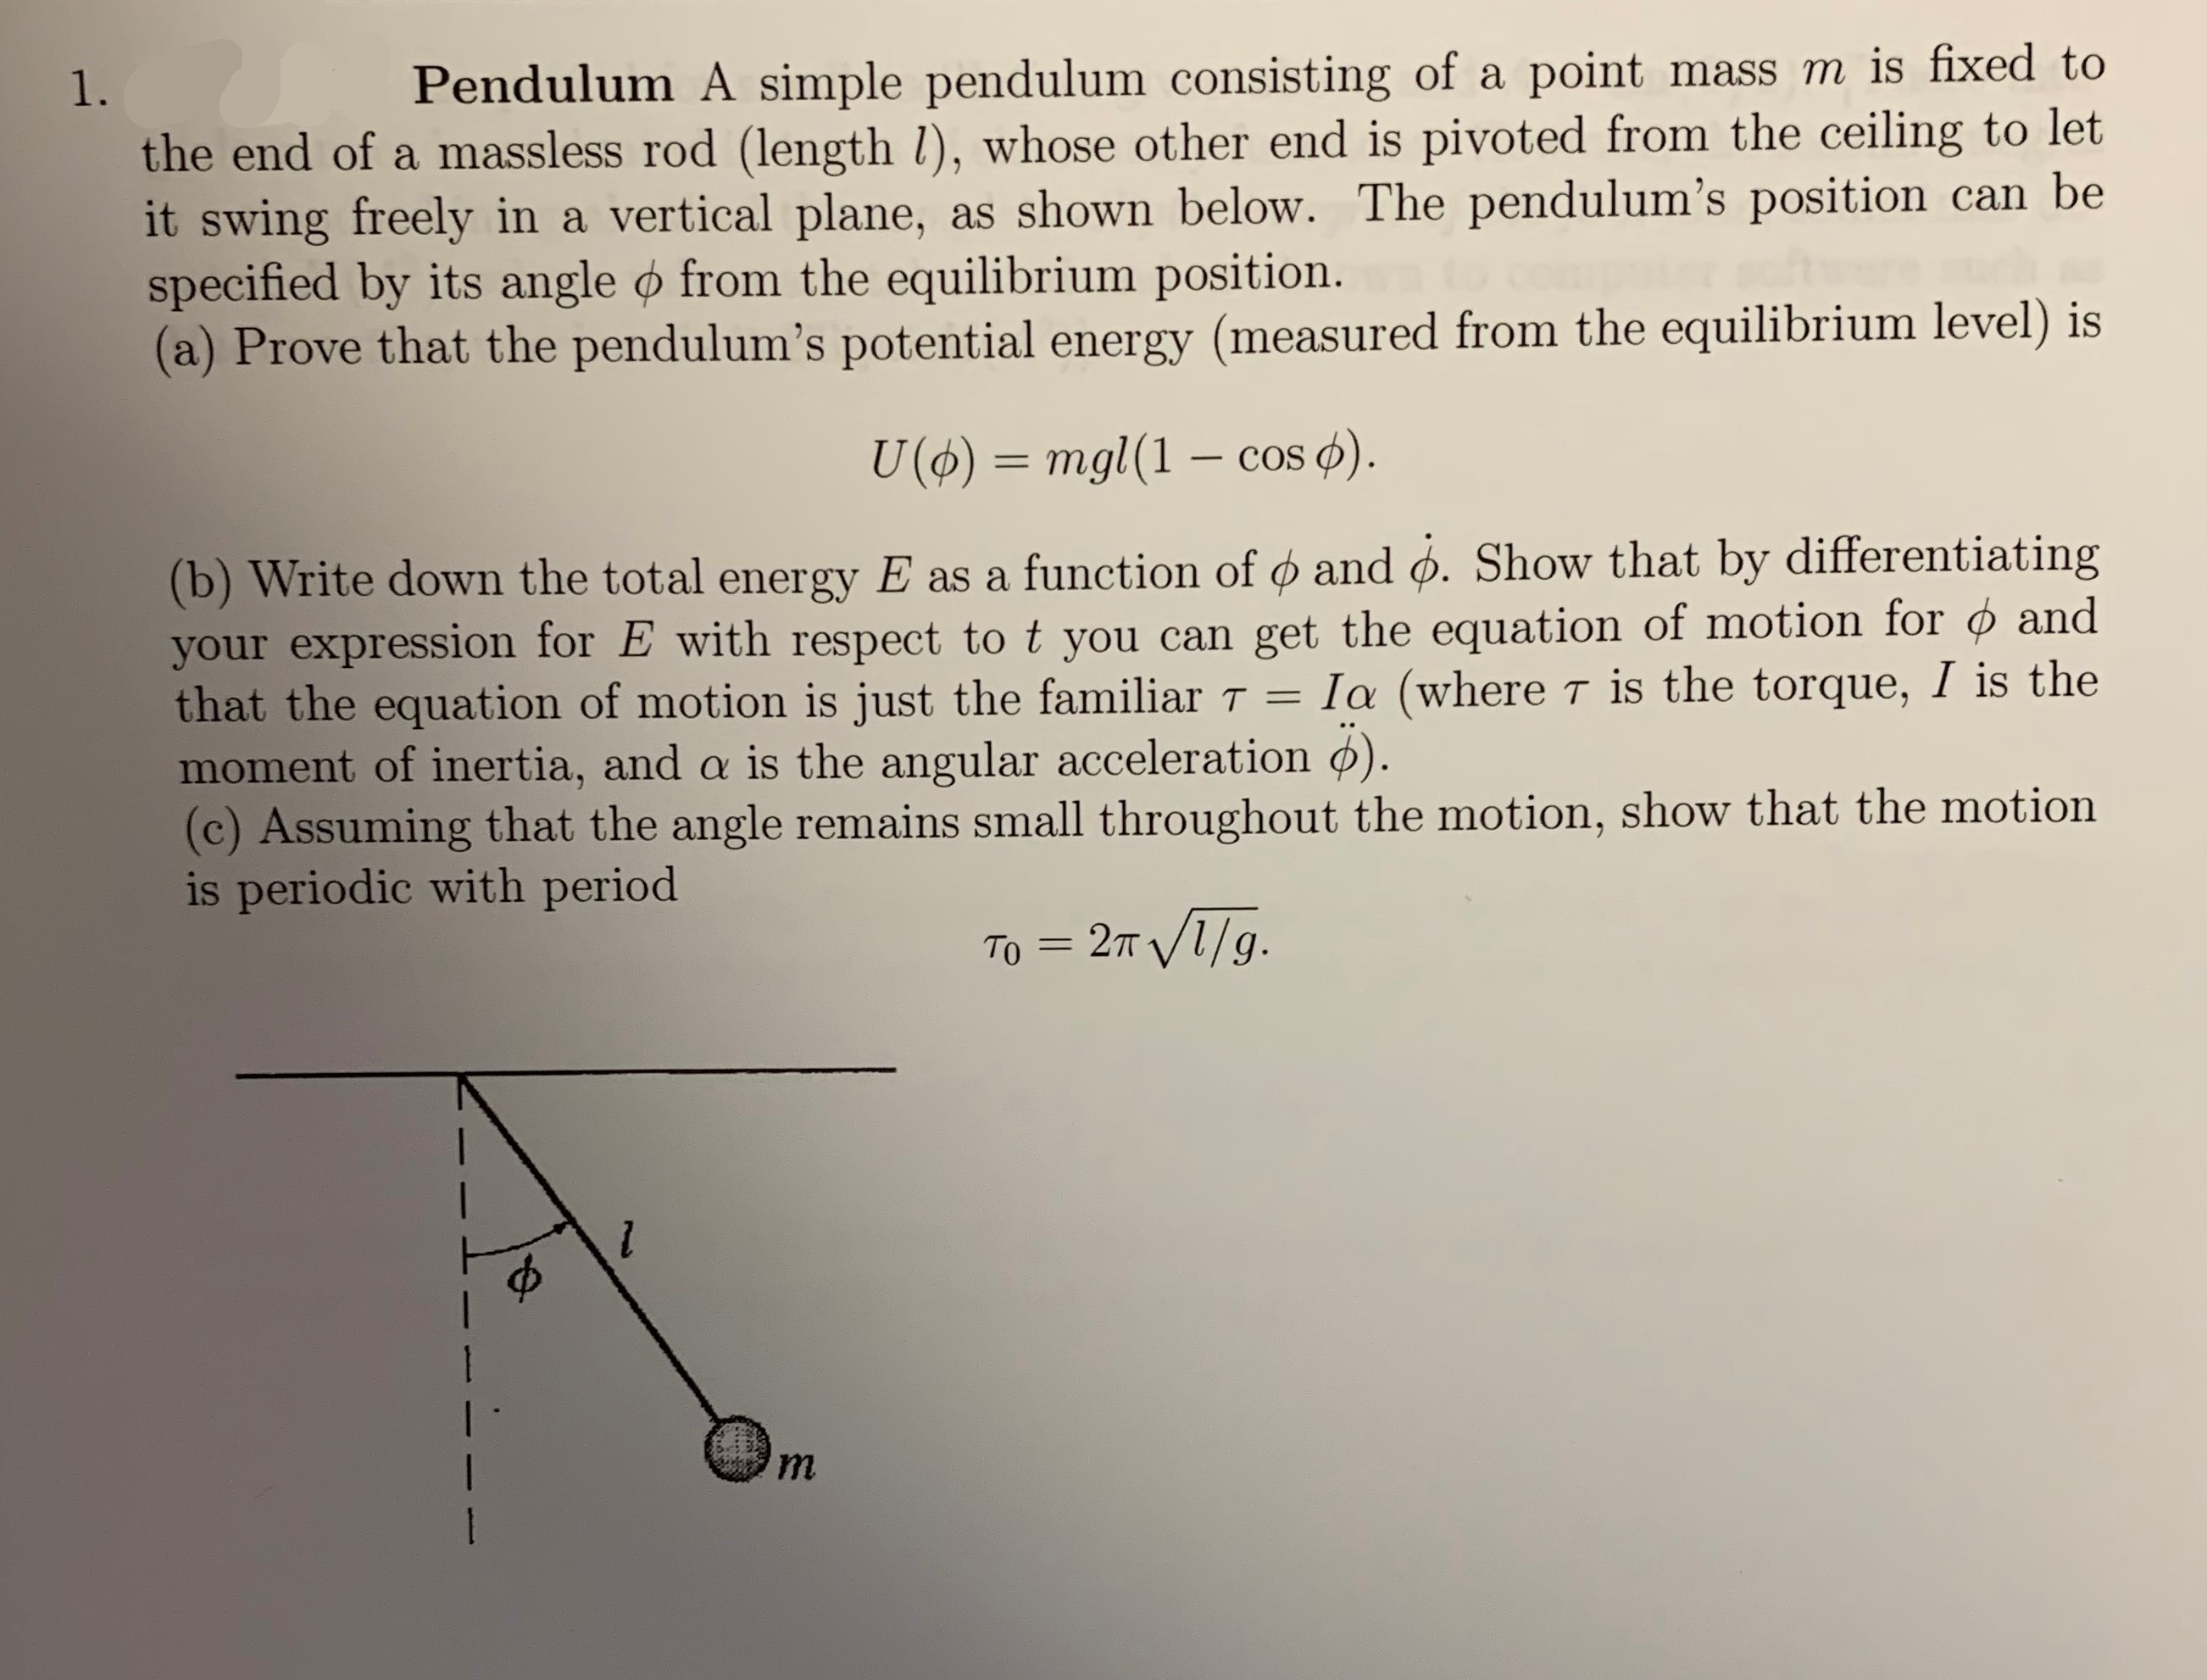 mass m is fixed to Pendulum A simple pendulum consisting of a point 1. the end of a massless rod (length /), whose other end is pivoted from the ceiling to let it swing freely in a vertical plane, specified by its angle o from the equilibrium position. (a) Prove that the pendulum's potential energy (measured from the equilibrium level) is as shown below. The pendulum's position can be U ()mgl (1 - cos ) (b) Write down the total energy E as a function of and o. Show that by differentiating your expression for E with respect to t you can get the equation of motion for ¢ and that the equation of motion is just the familiar T moment of inertia, and a is the angular acceleration ). (c) Assuming that the angle remains small throughout the motion, show that the motion is periodic with period Ia (where T is the torque, I is the - 2т V1/9. Tо m 1